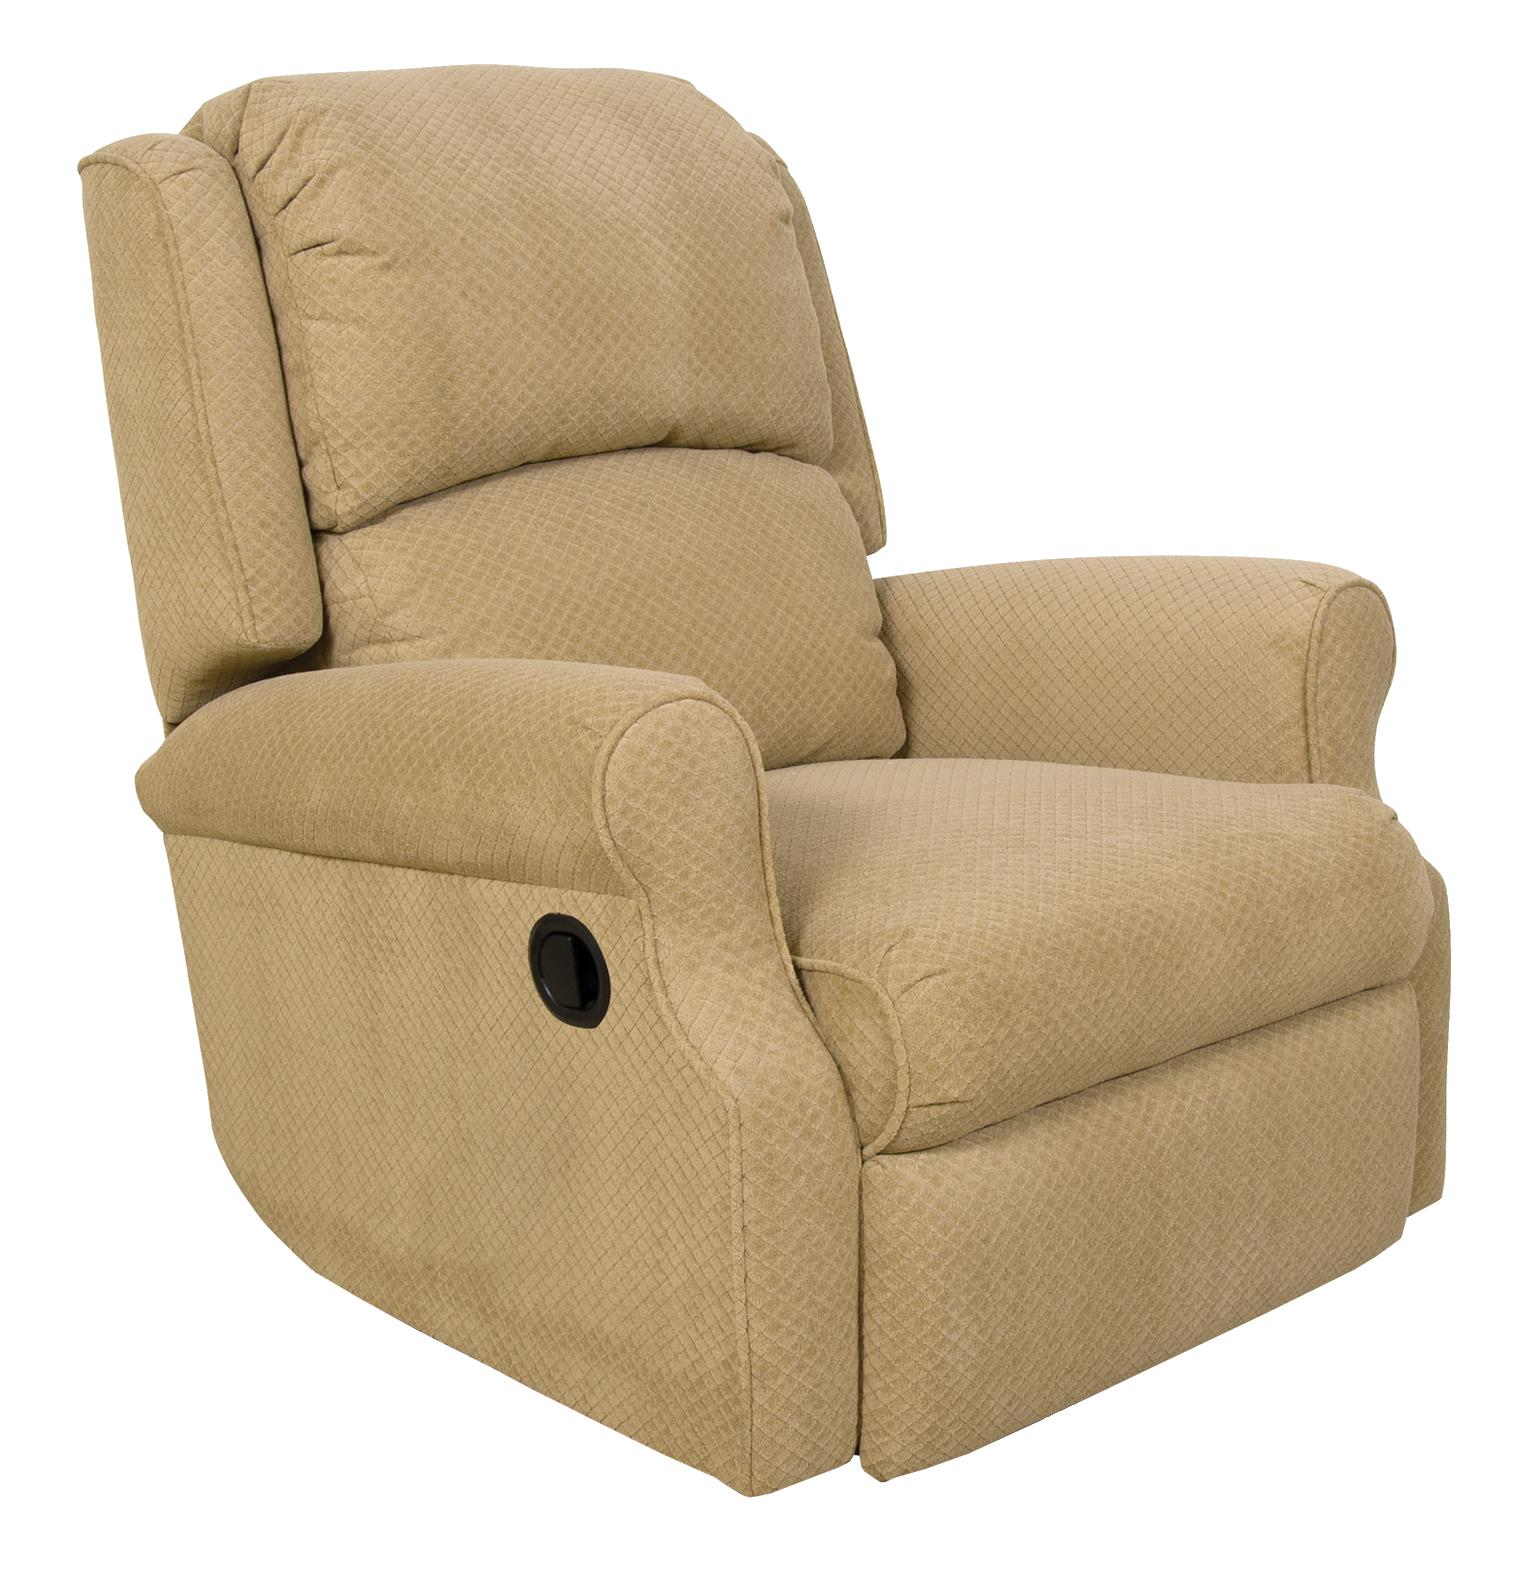 Marybeth Minimum Proximity Recliner by England at Corner Furniture